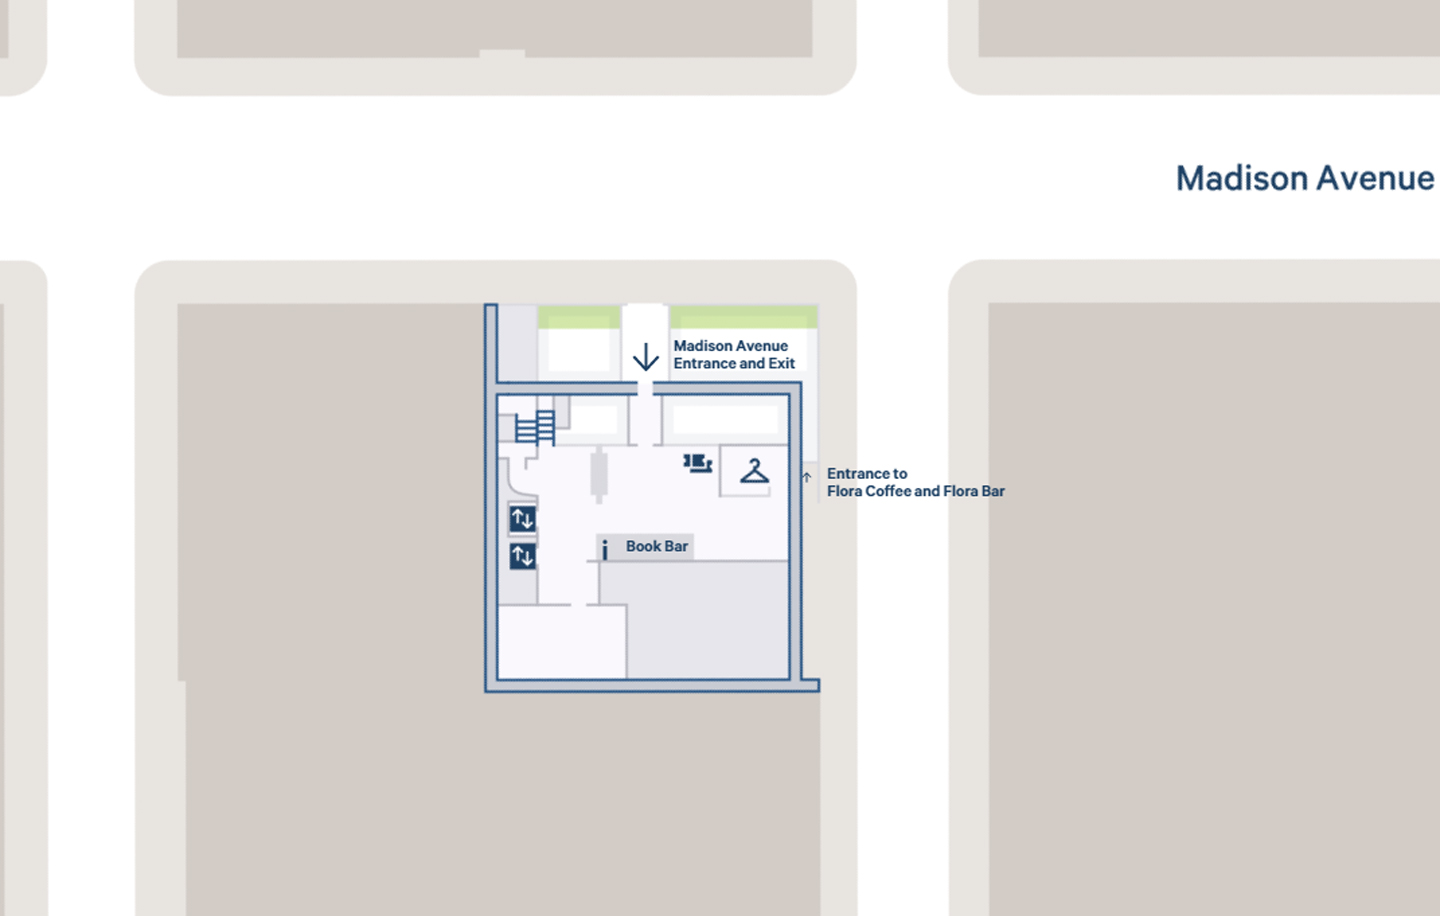 Screenshot of The Met Breuer interactive map